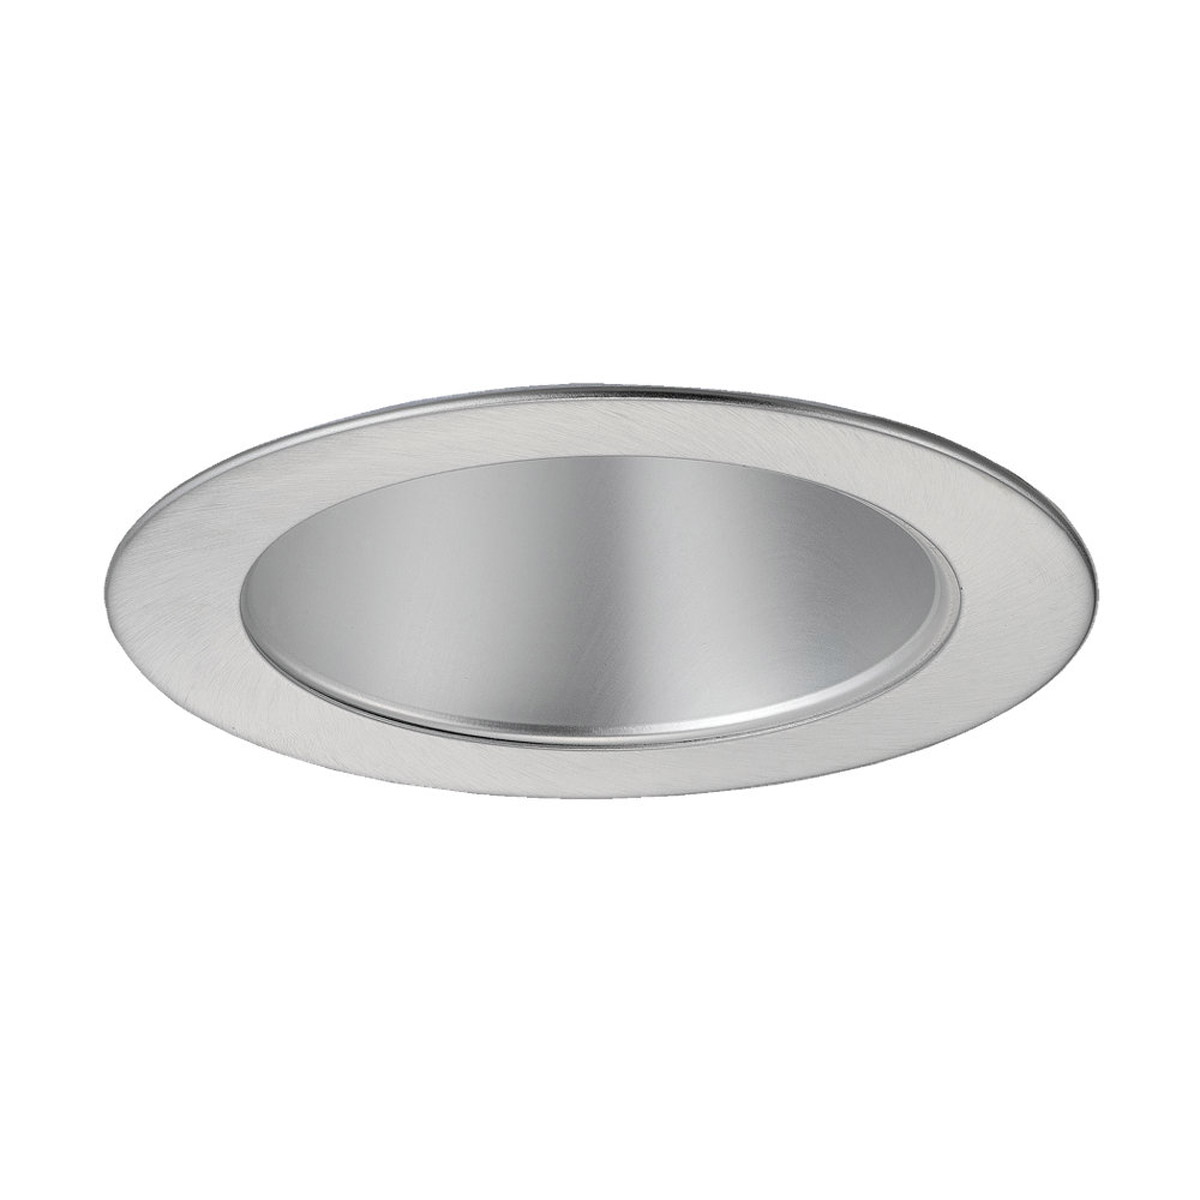 Sea Gull Lighting Signature Recessed Trim Only in Satin Nickel 1232AT-849 photo